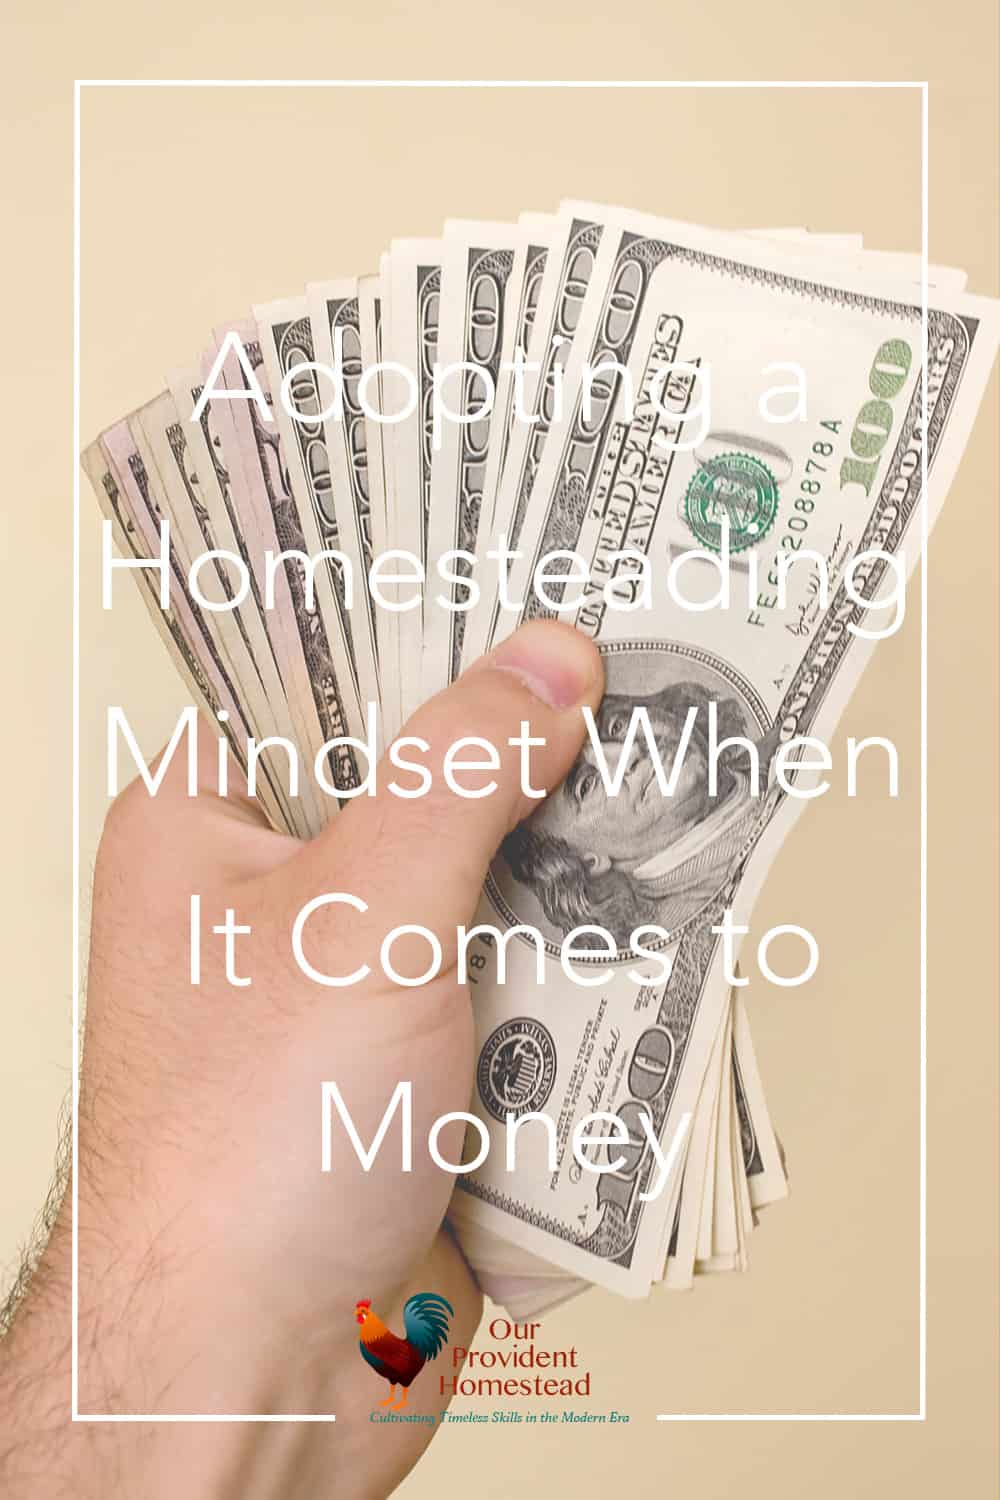 How does money affect your homesteading? Click here to see how devising a homesteading mindset changes your outlook on money. Homesteading Mindset | Making Money on the Homestead | Homesteading Finances